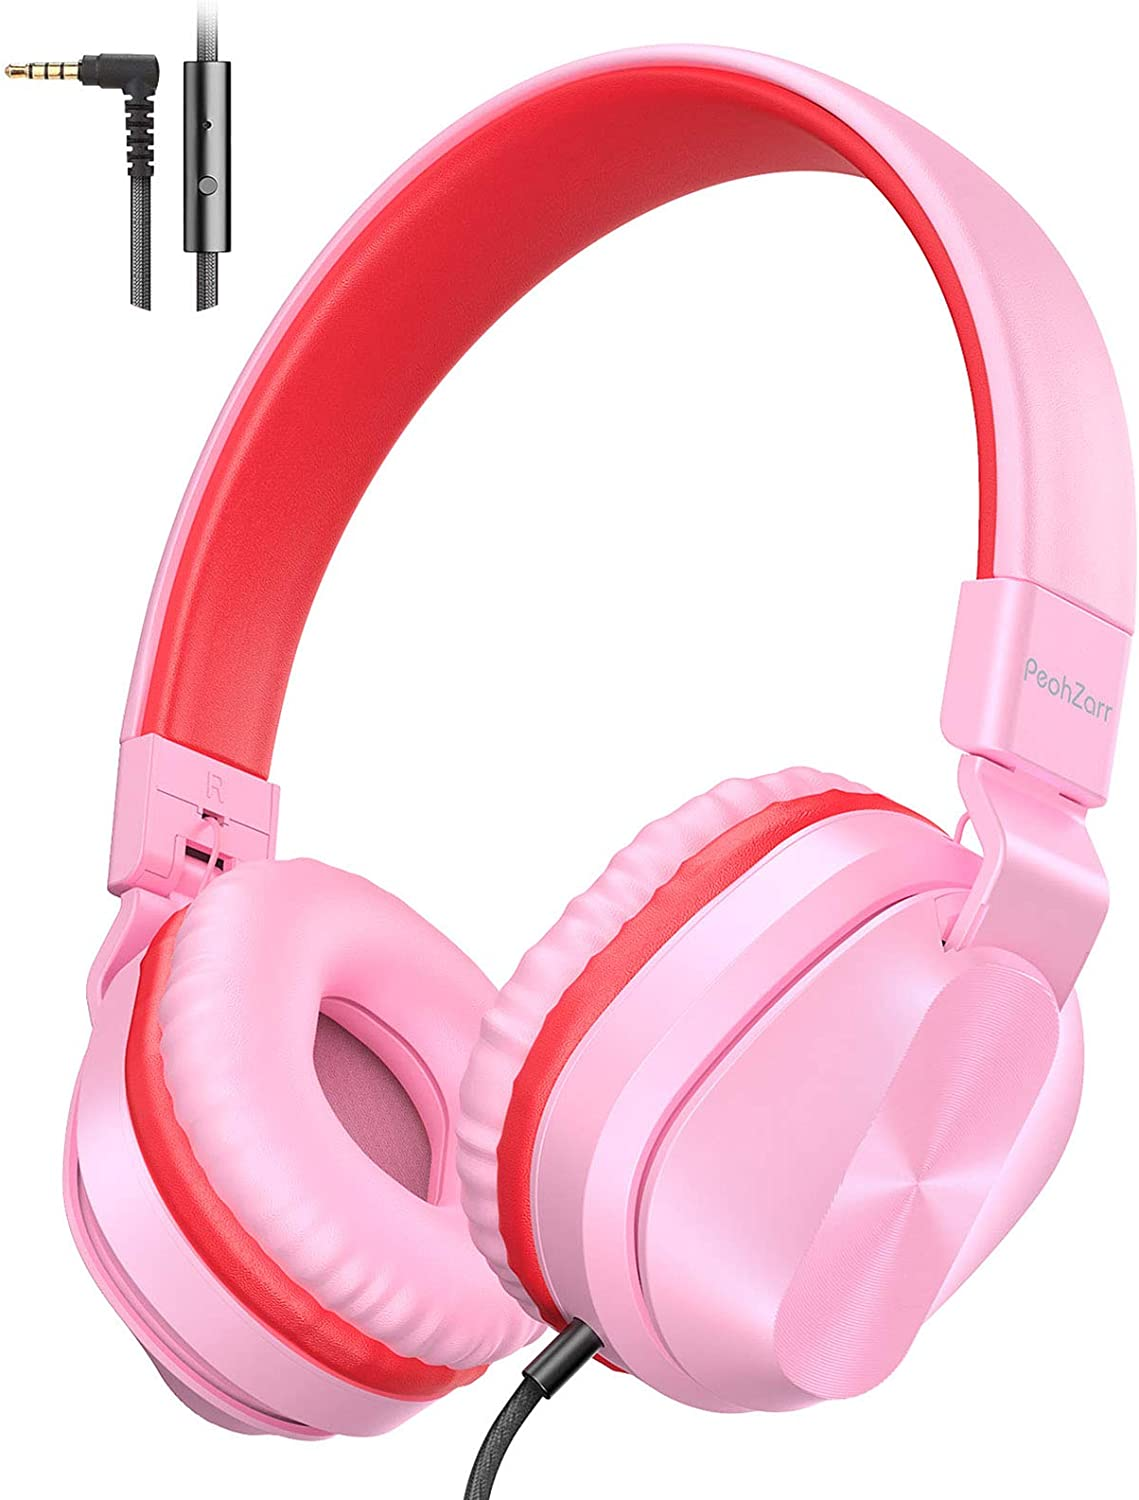 PeohZarr On-Ear Headphones with Microphone, Lightweight Folding Stereo Bass Headphones with 1.5M Tangle Free Cord, Portable Wired Headphones for Smartphone Tablet Laptop Computer MP3/4-Pink